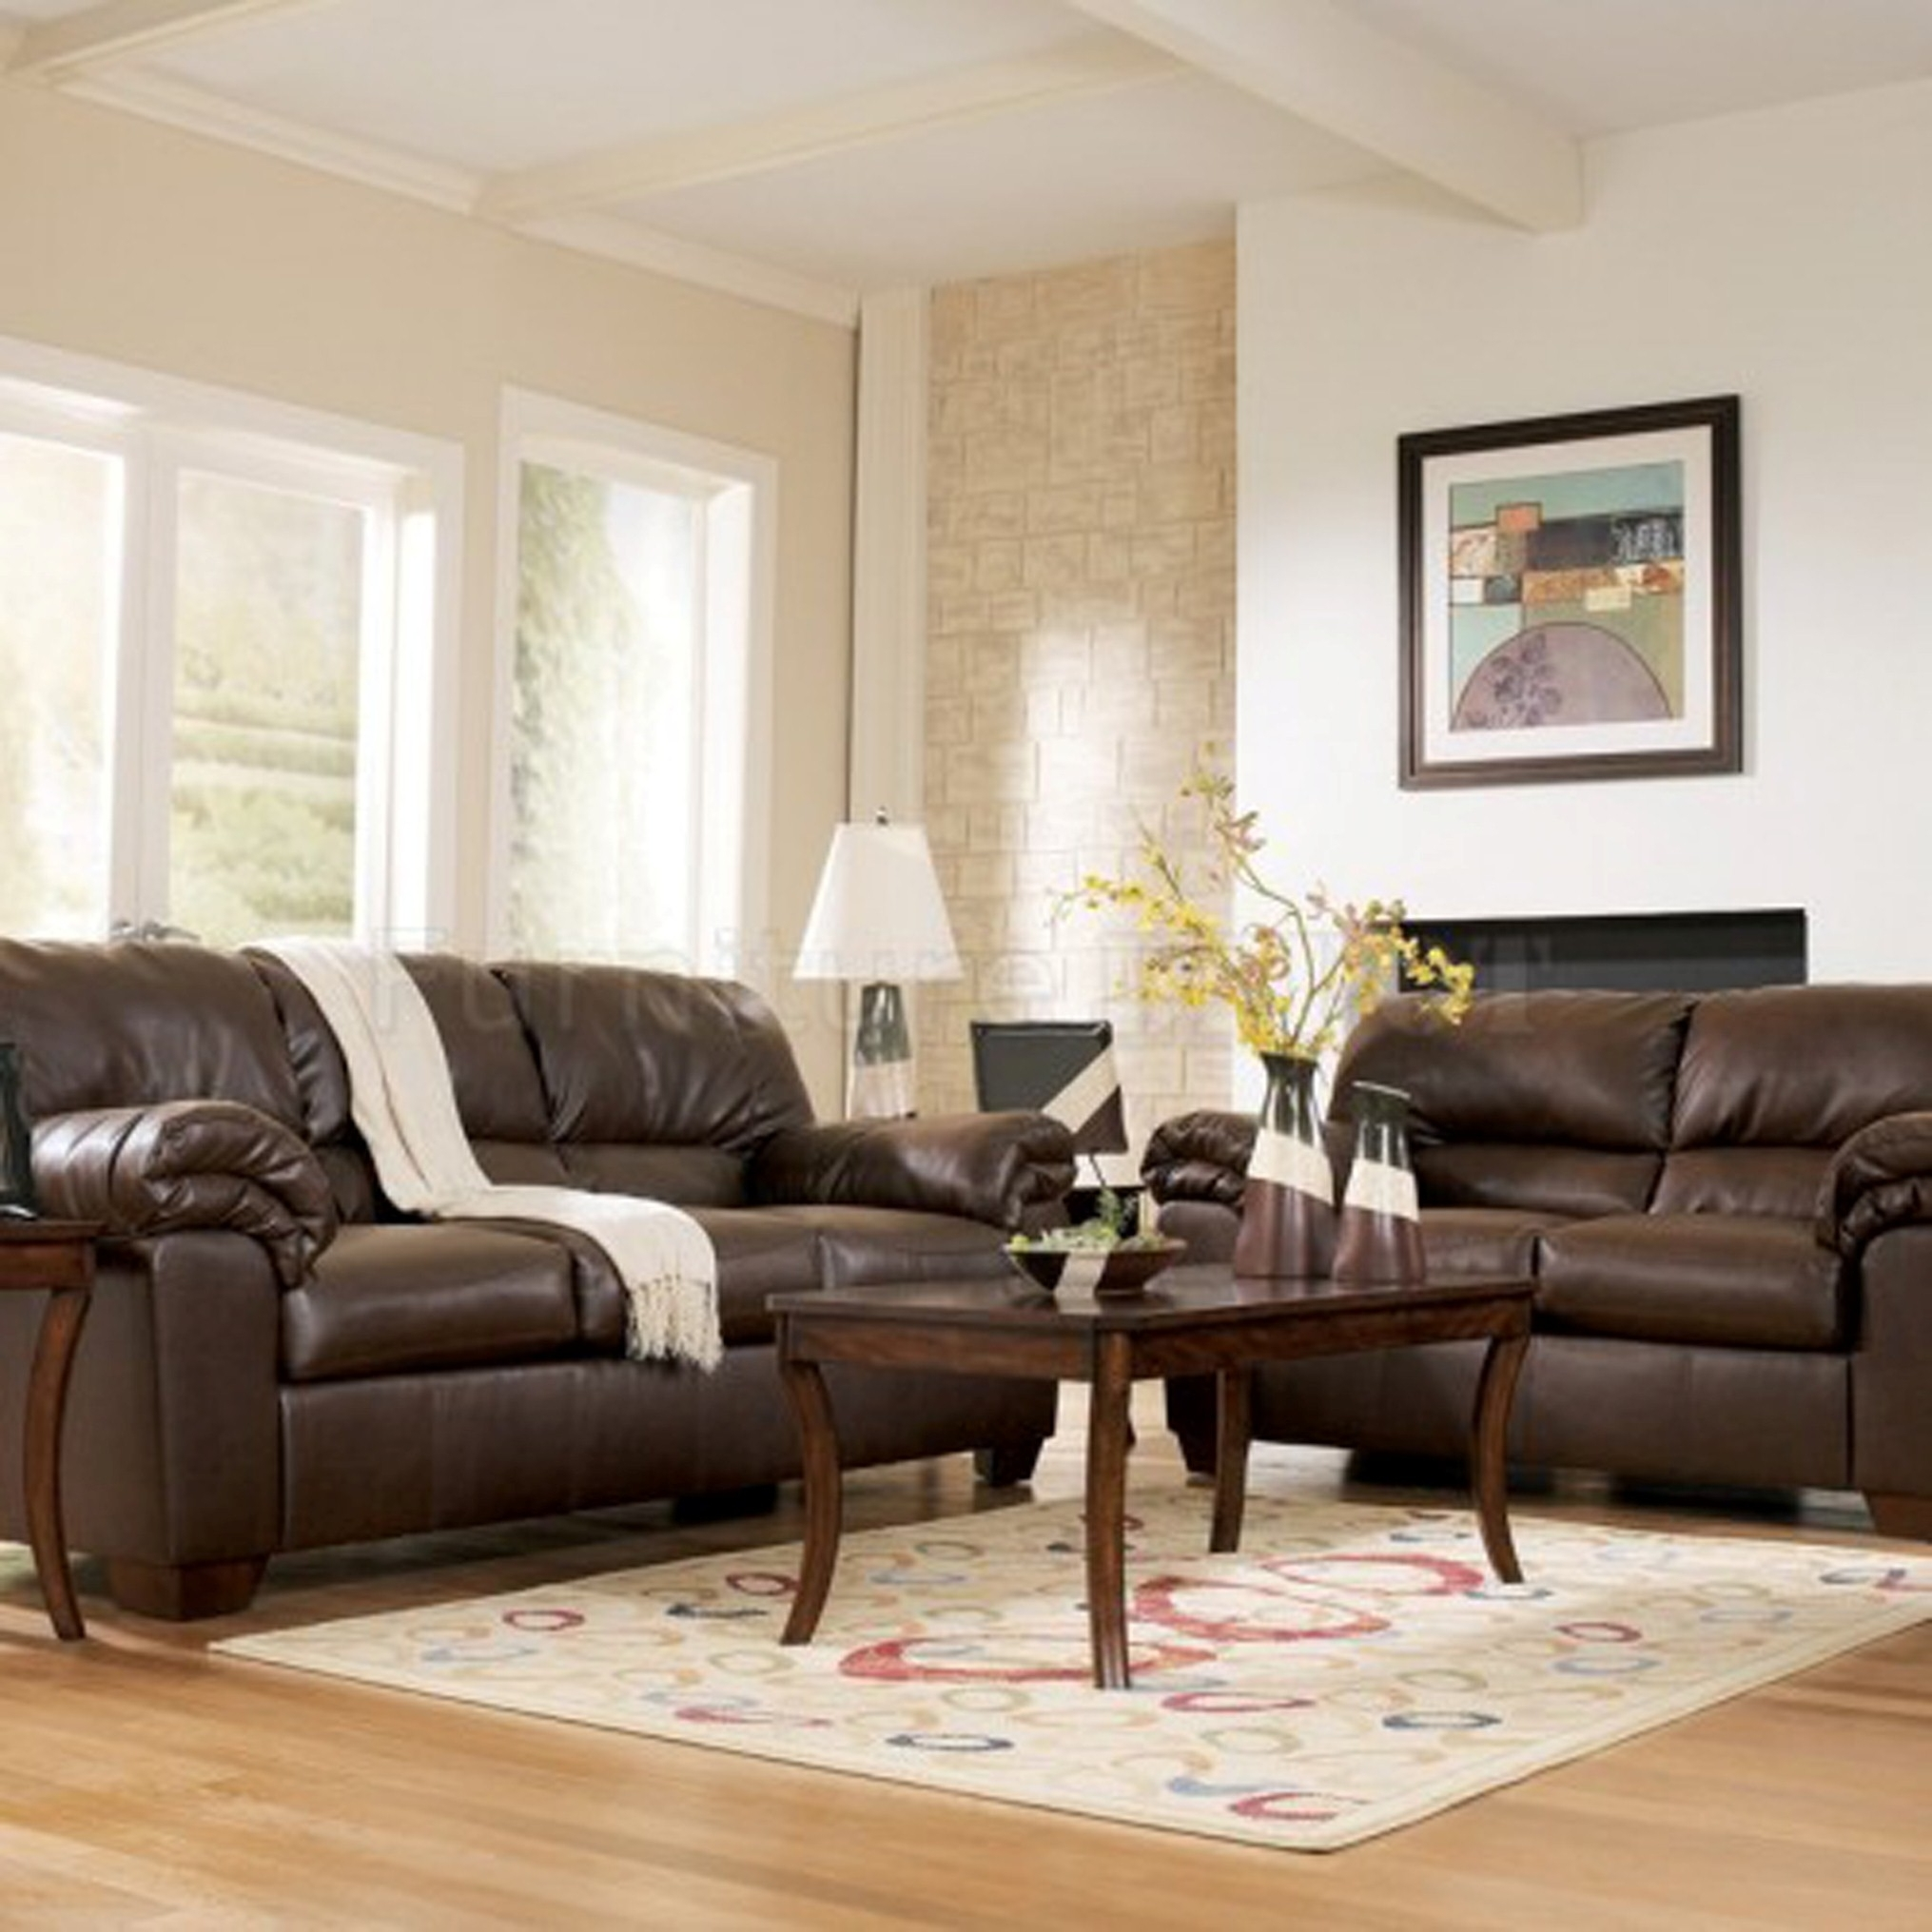 modern living room ideas with brown leather sofa living room ideas brown leather sofa 28239